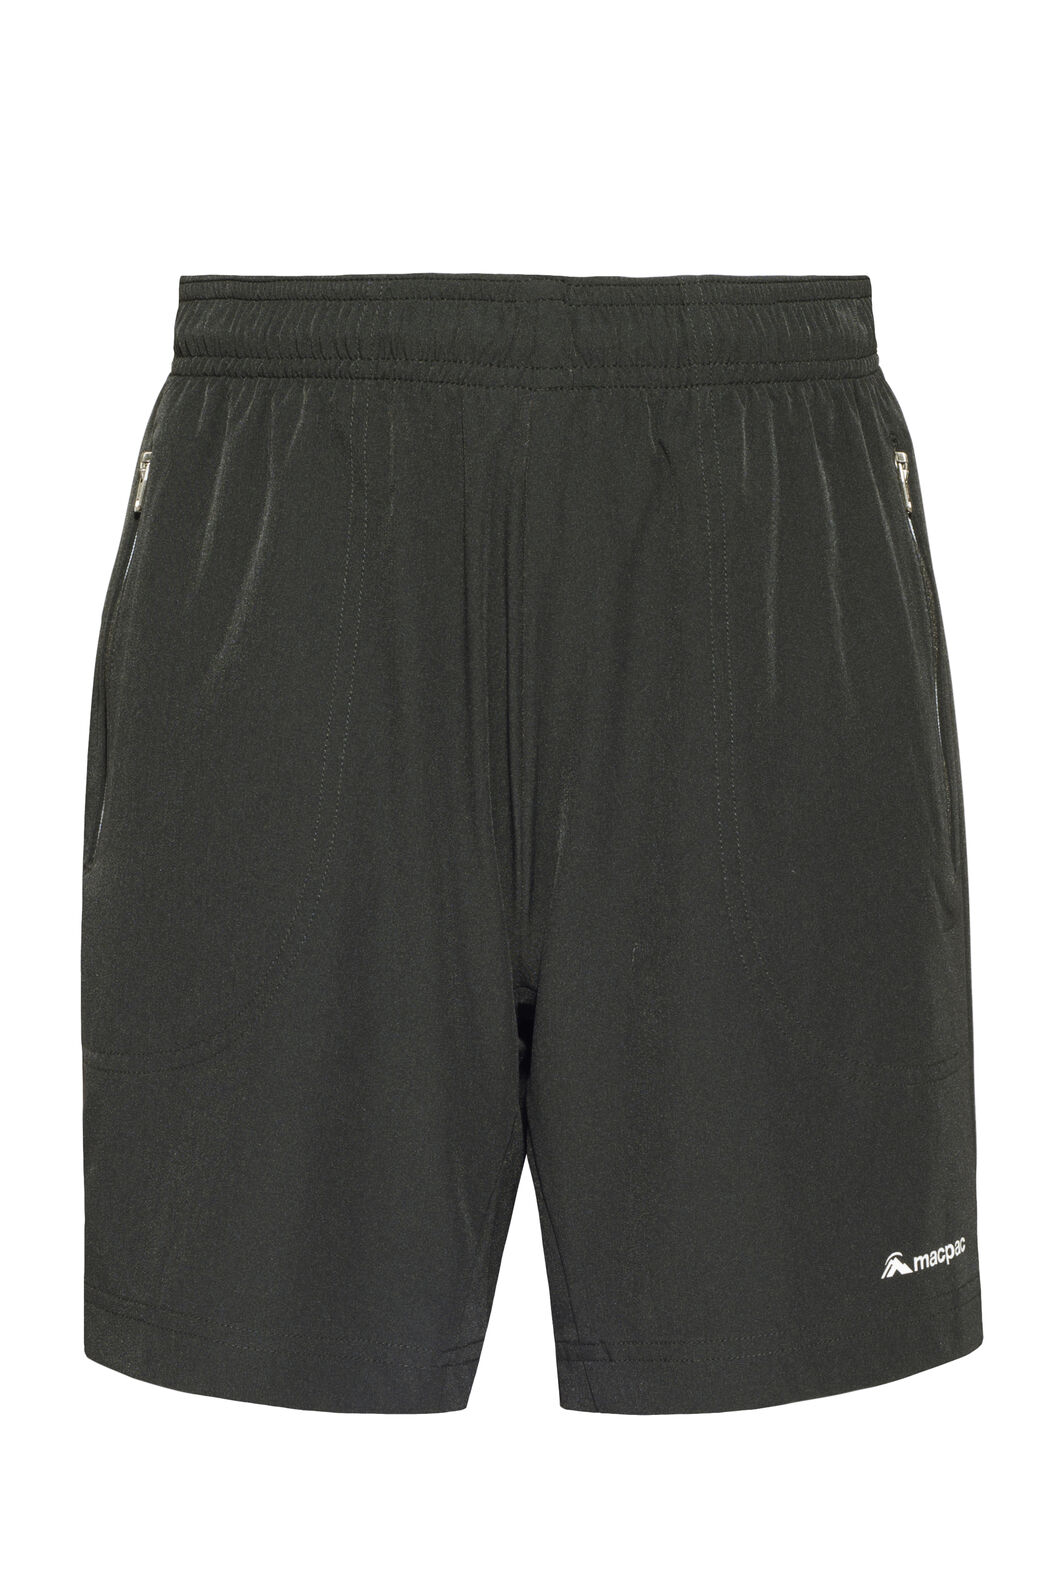 Macpac Fast Track Shorts — Kids', Black, hi-res